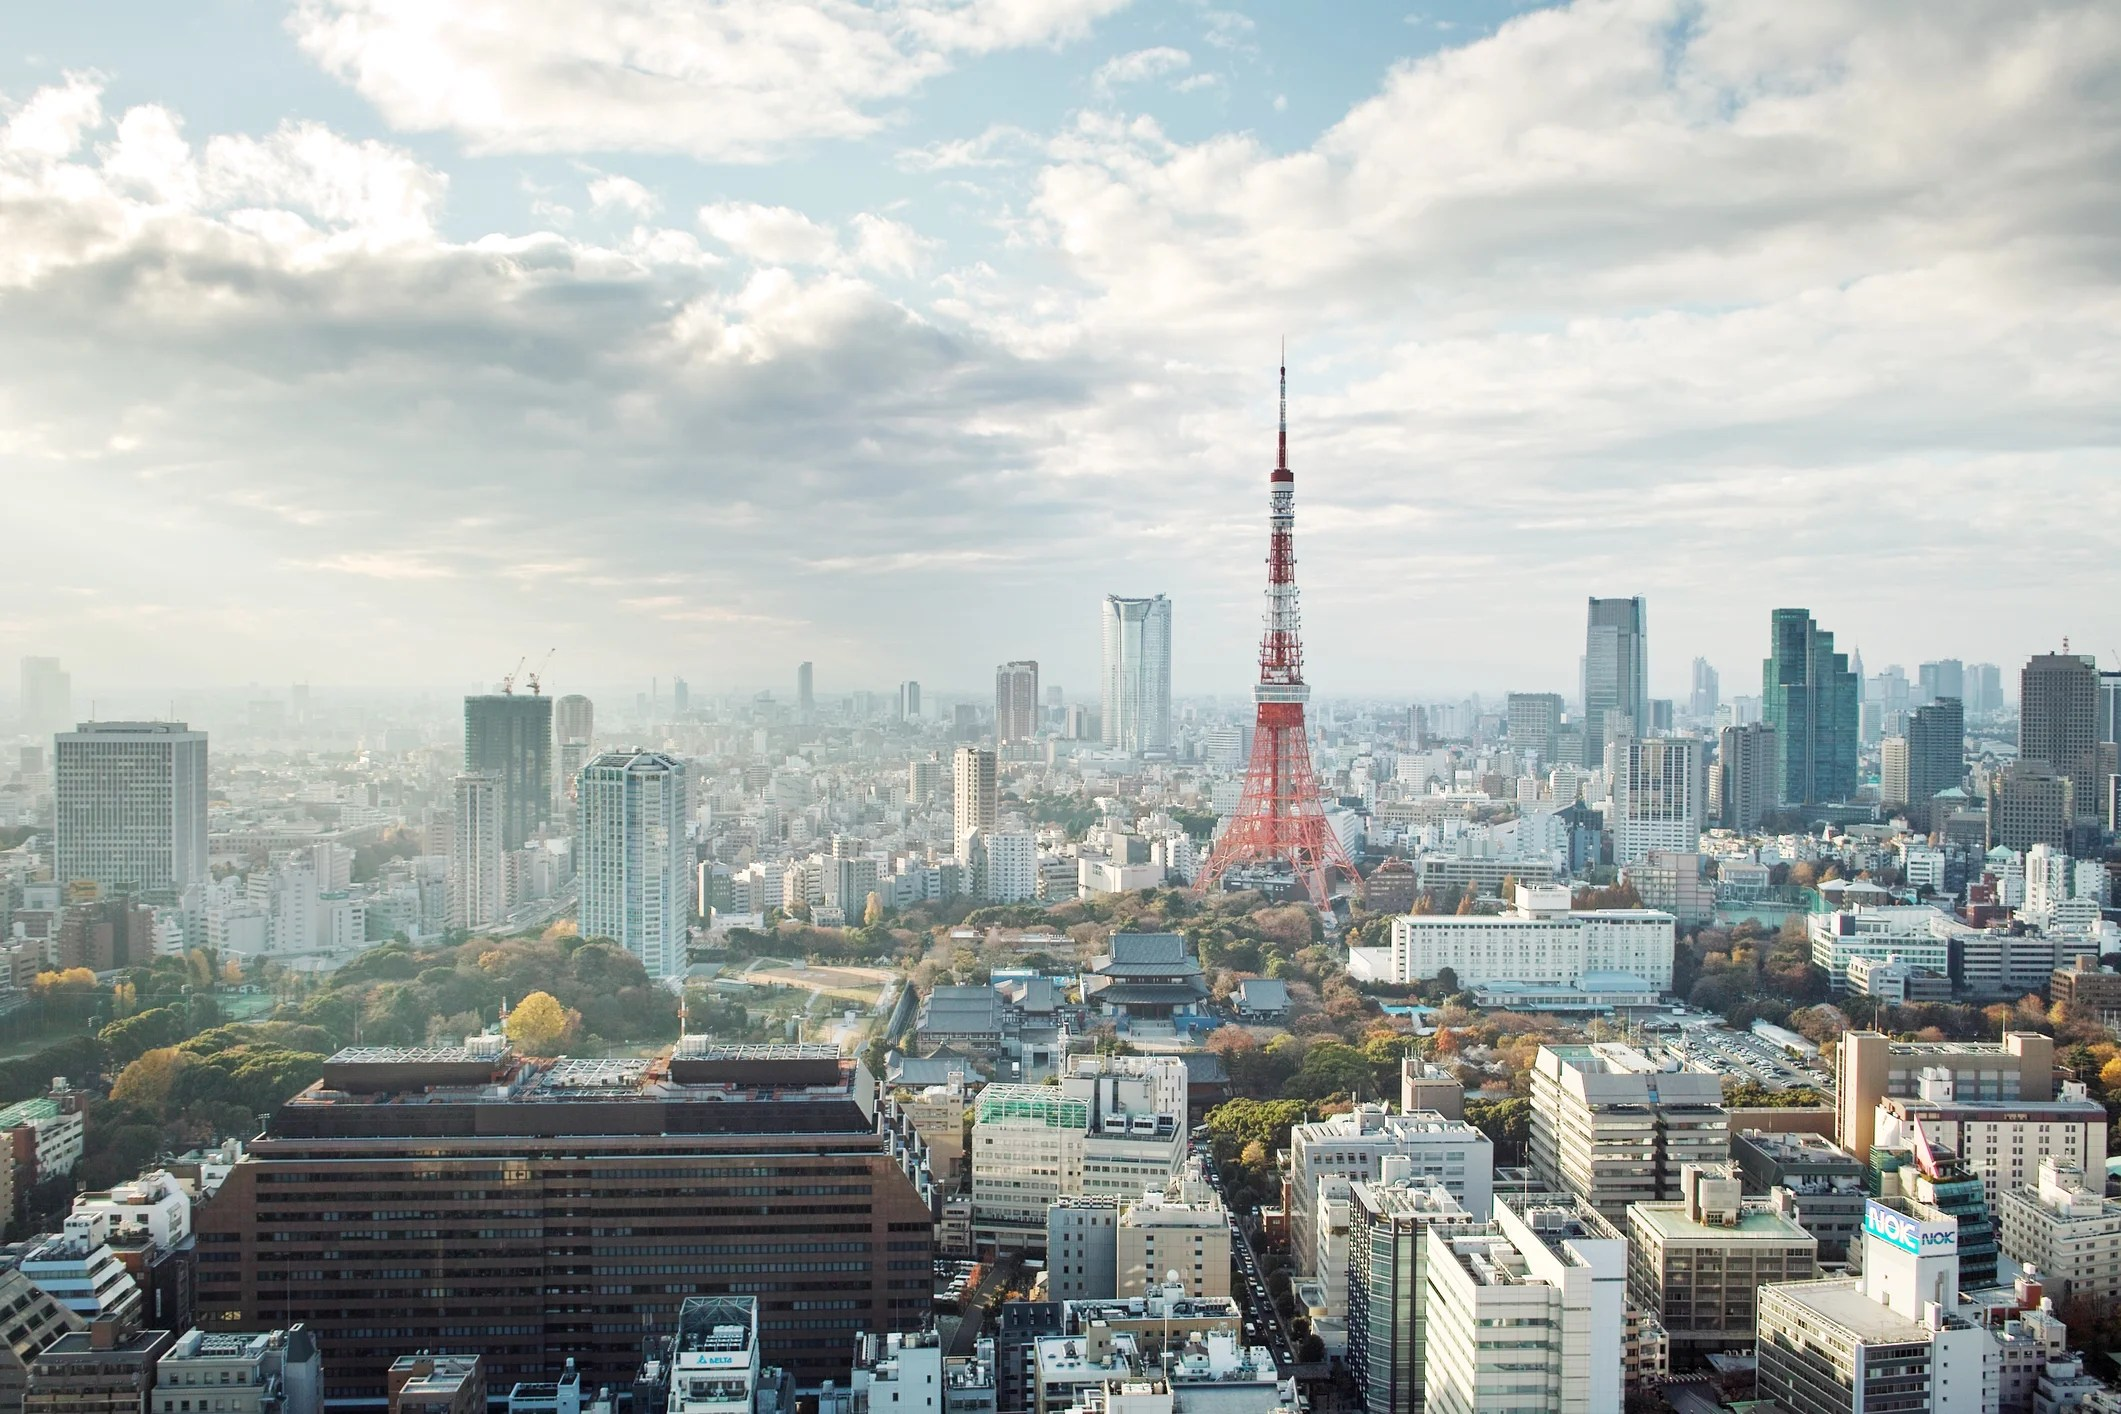 Sayonara: You Now Have to Pay If You Want to Leave Japan